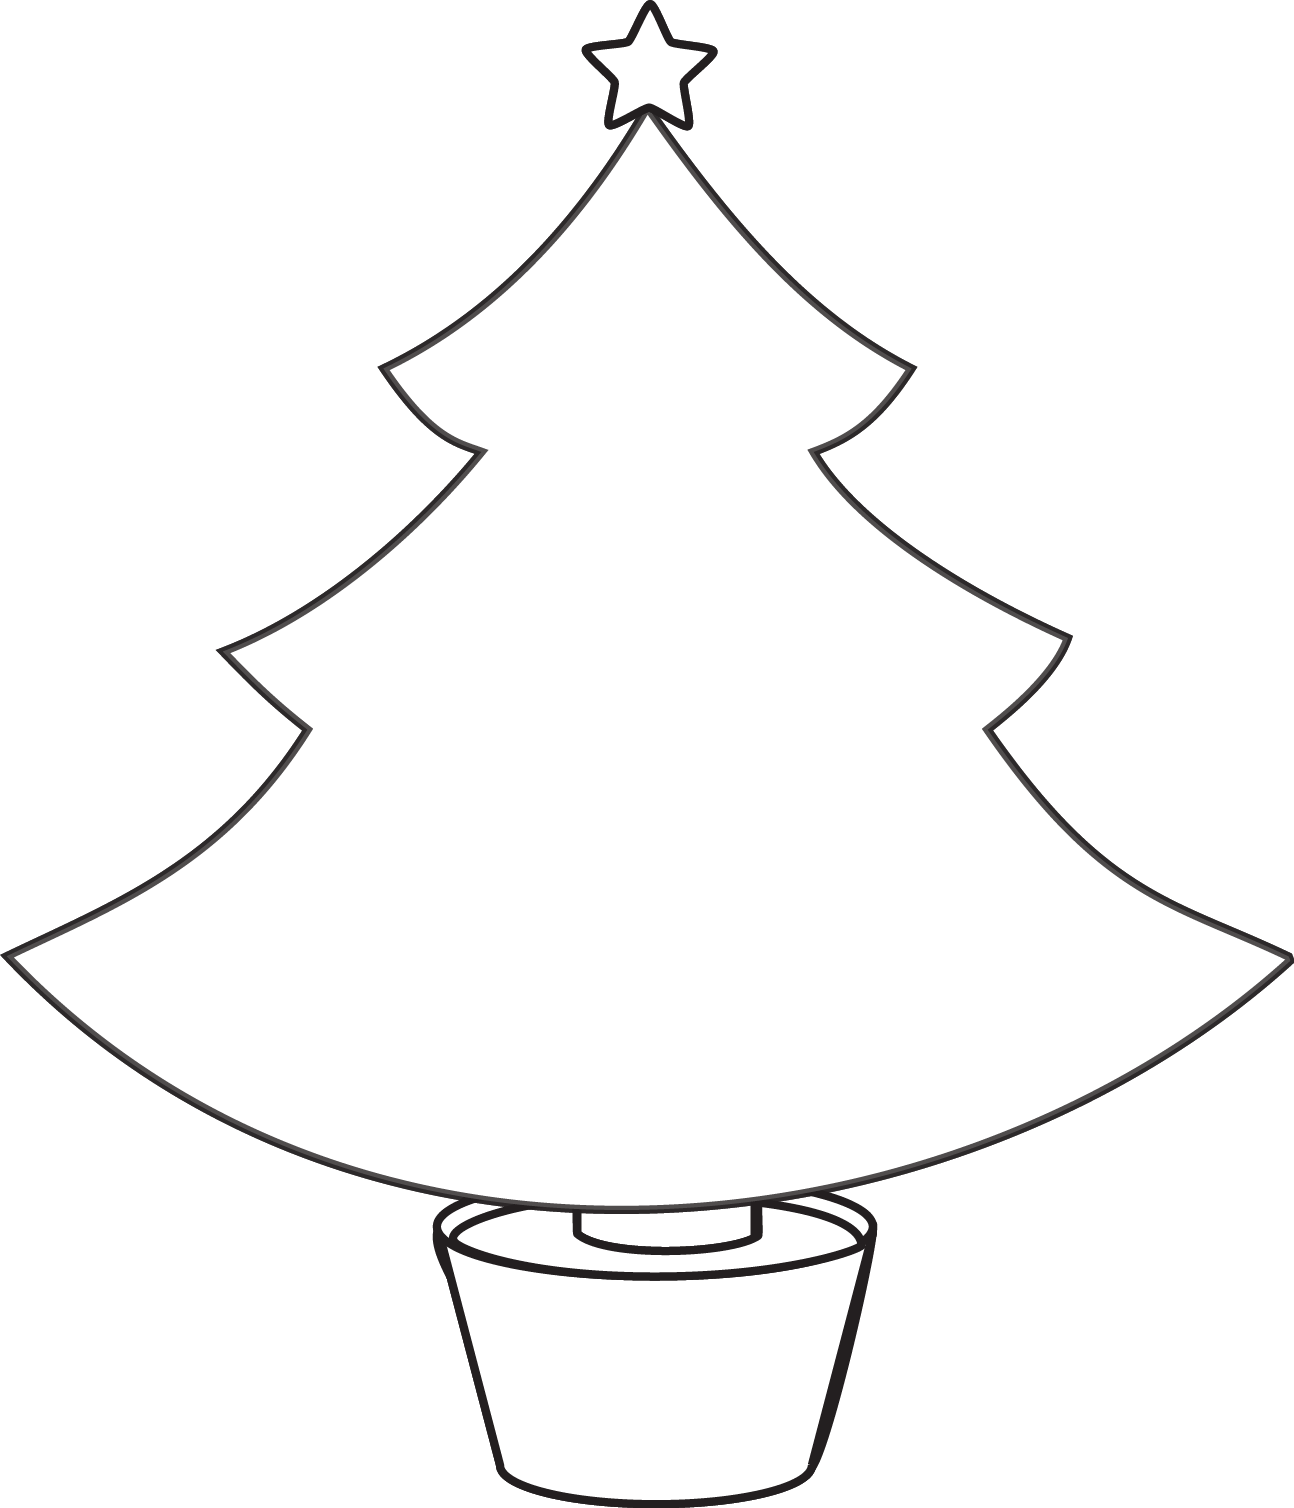 1294x1508 Outline Of Christmas Tree Clip Art